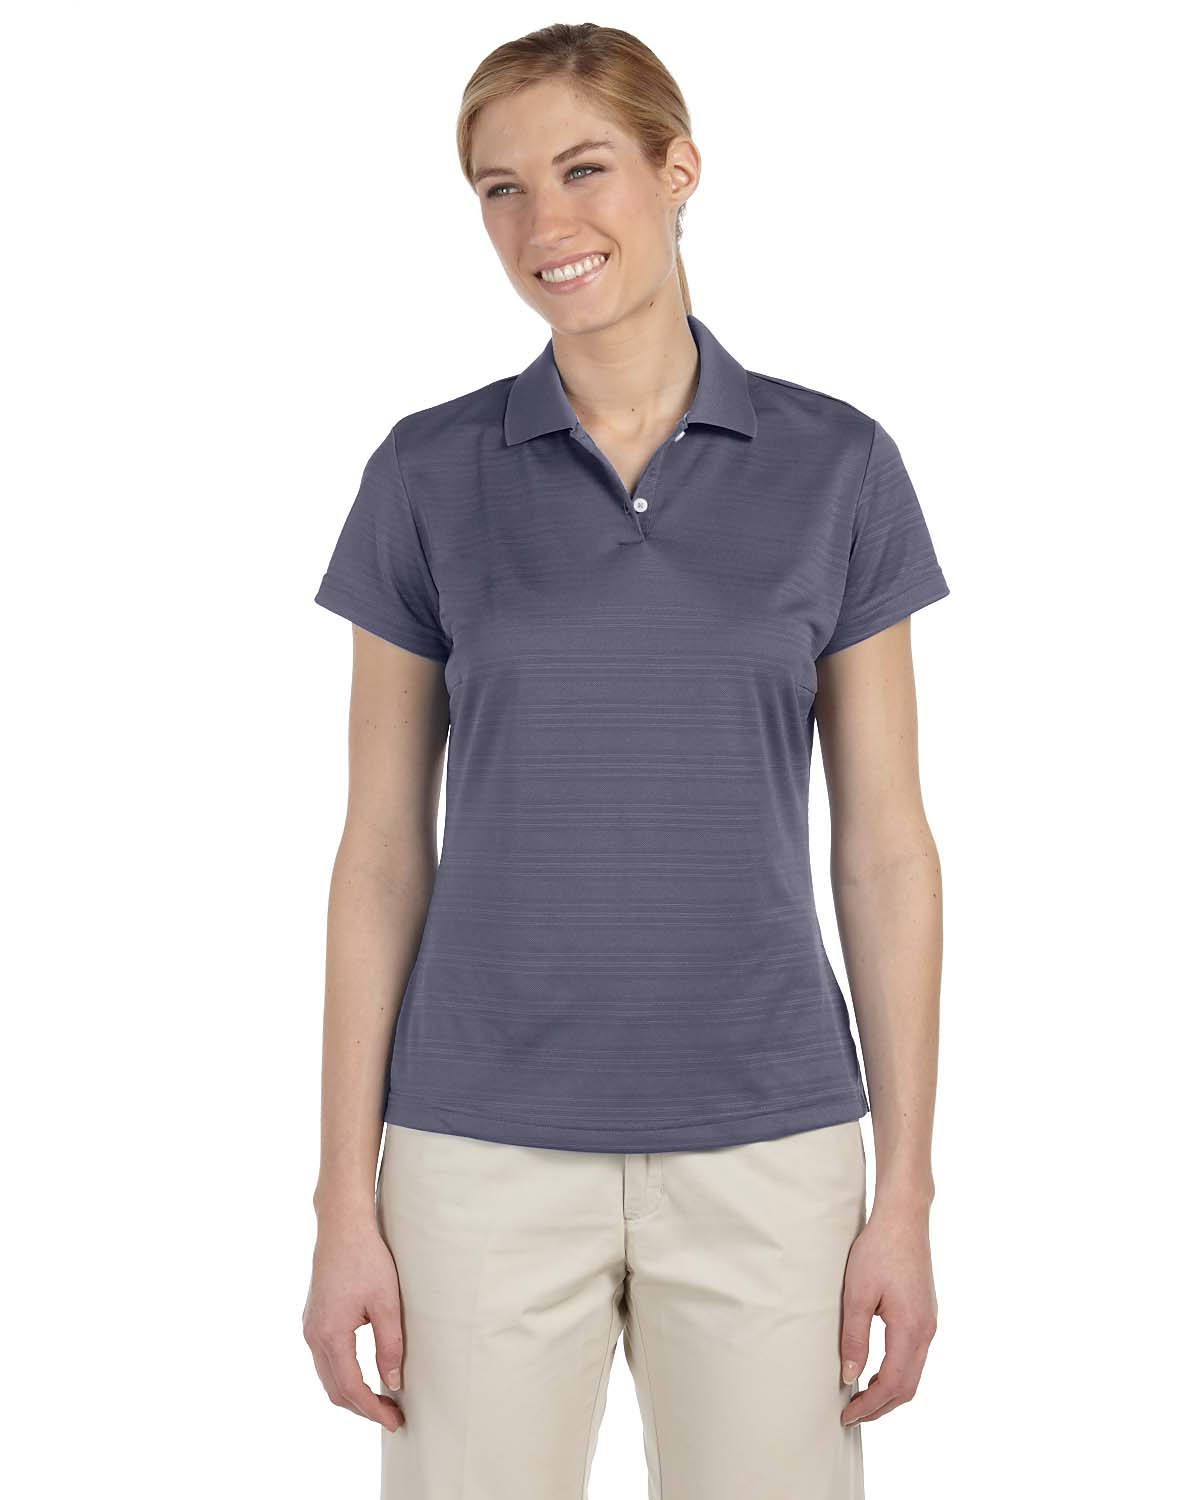 Adidas Golf Ladies Climalite® Textured Short-Sleeve Polo